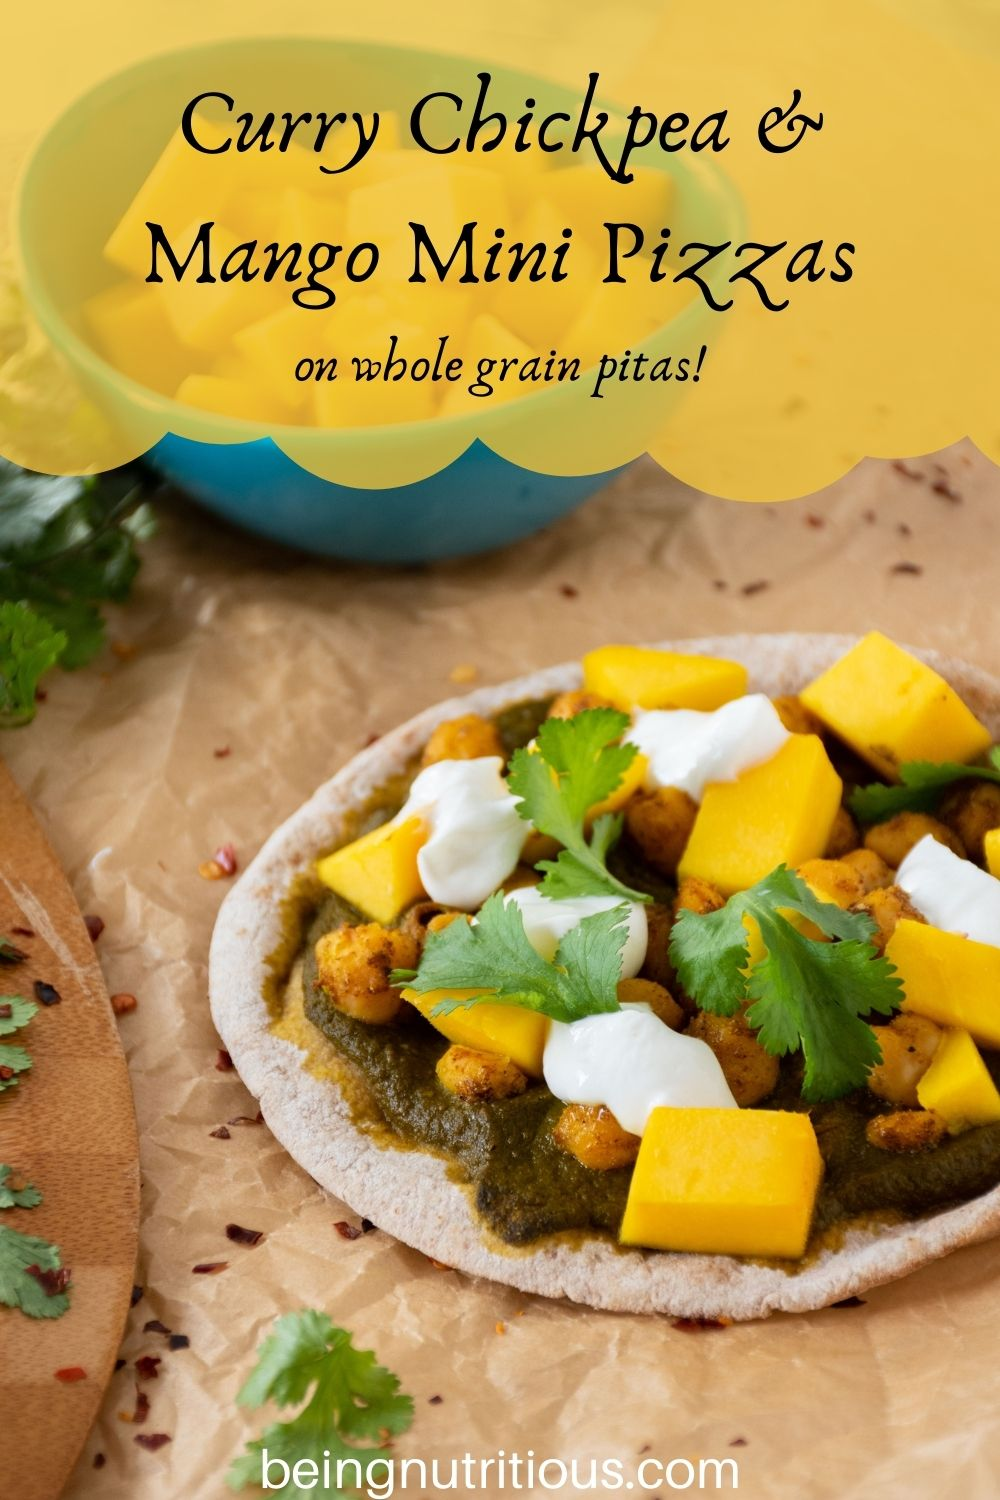 pizza with spinach sauce, chickpeas, and mangoes on a mini pita. Text overlay: Curry Chickpea & mango mini pizzas; on whole grain pitas!